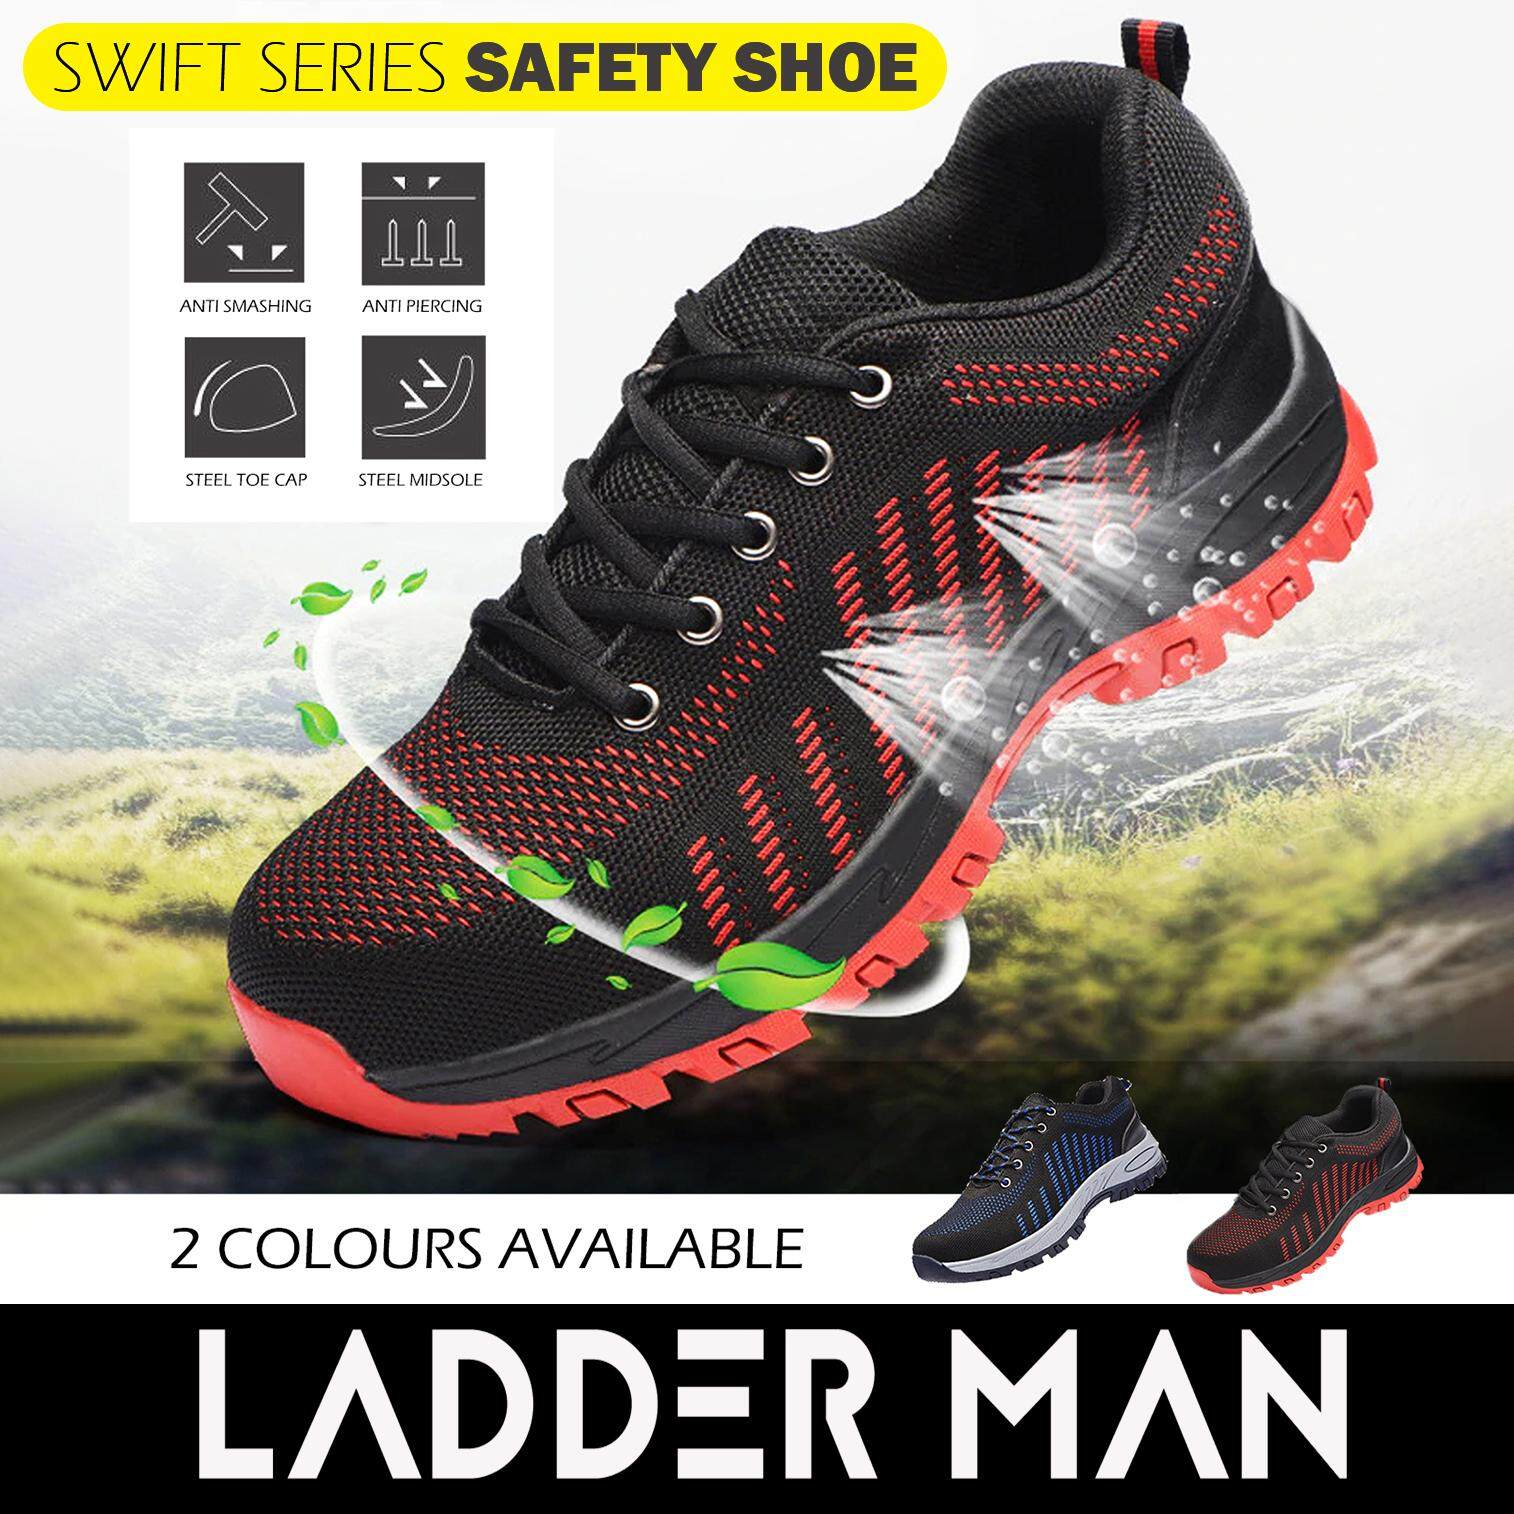 Swift Series Steel Toe Cap Midsole Low Cut Safety Boots Safety Shoe